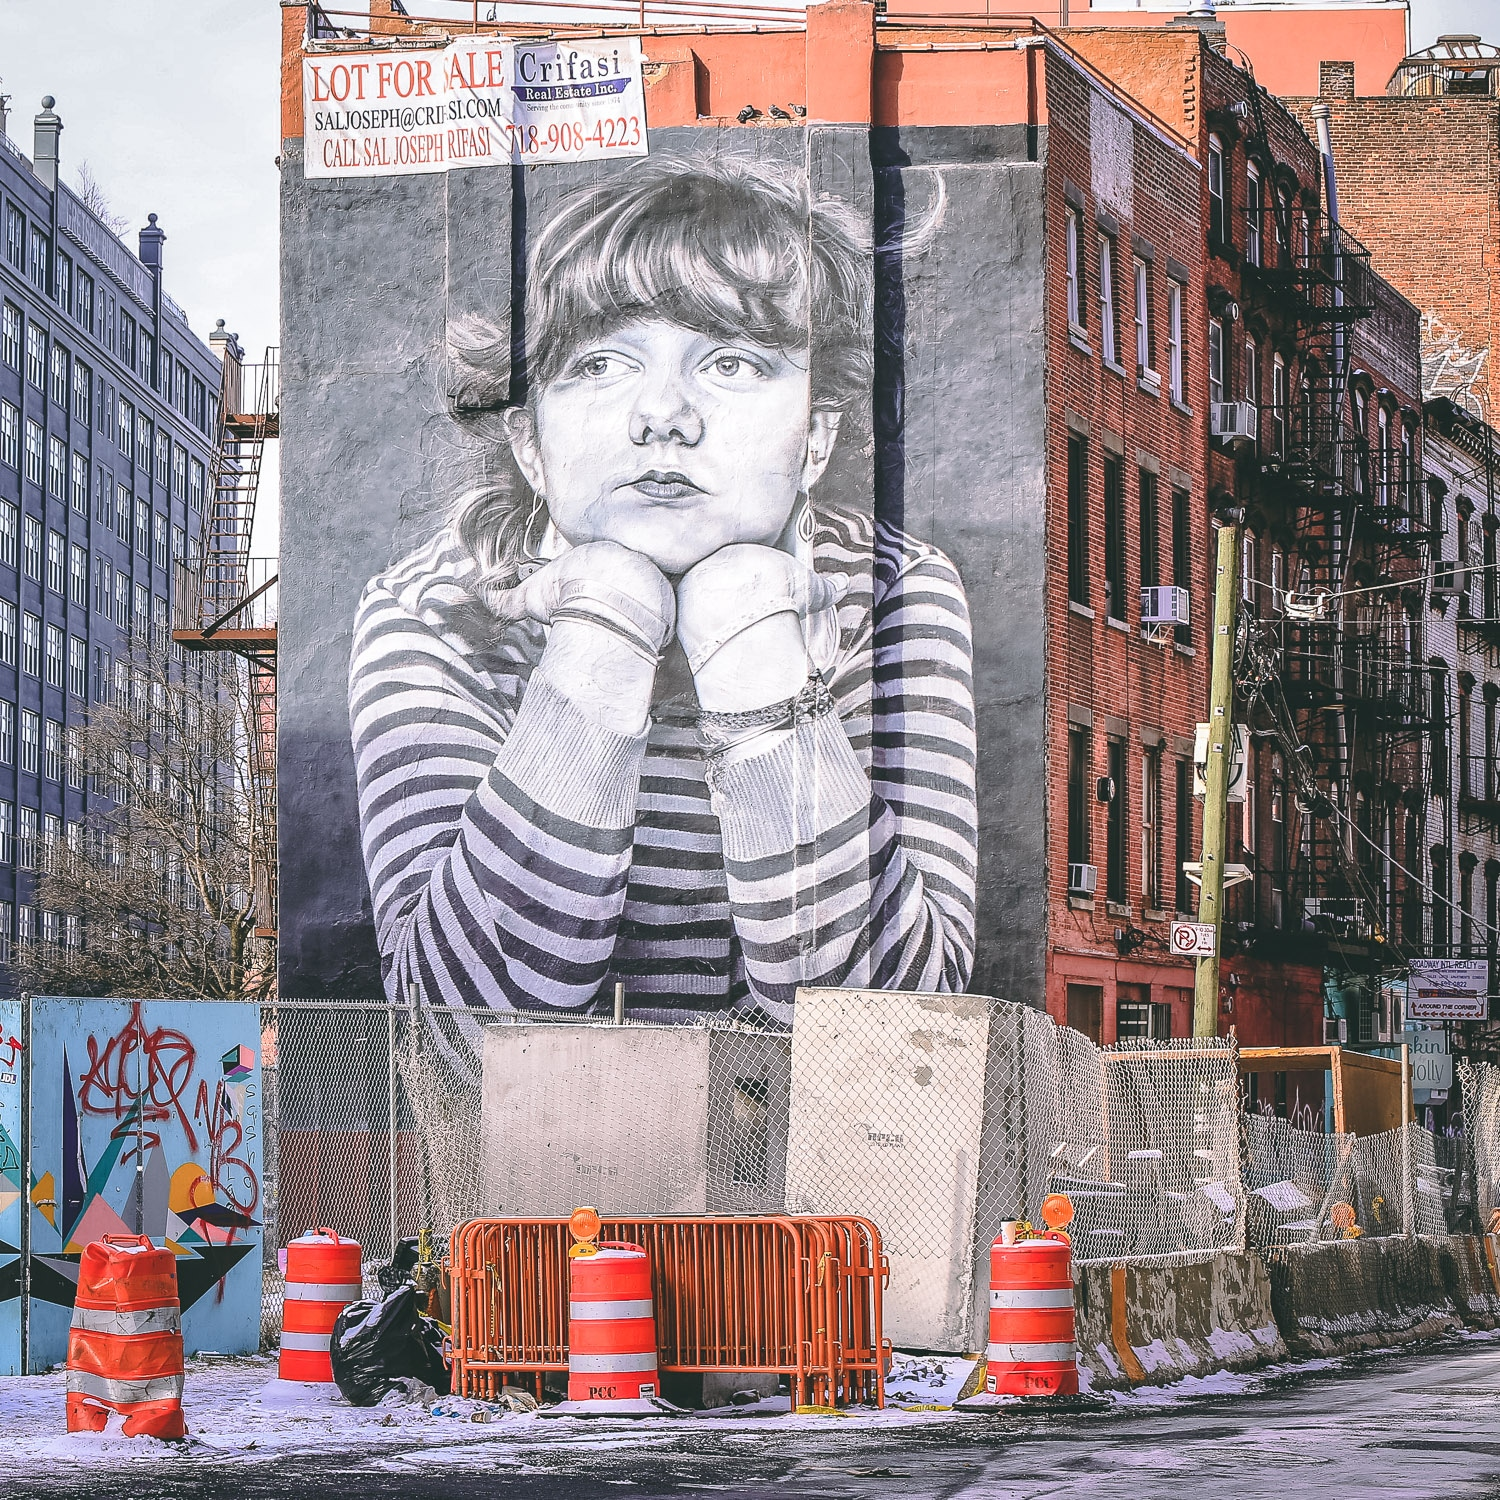 street-art-east-williamsburg-colossal-media Un week end à New York 4 jours